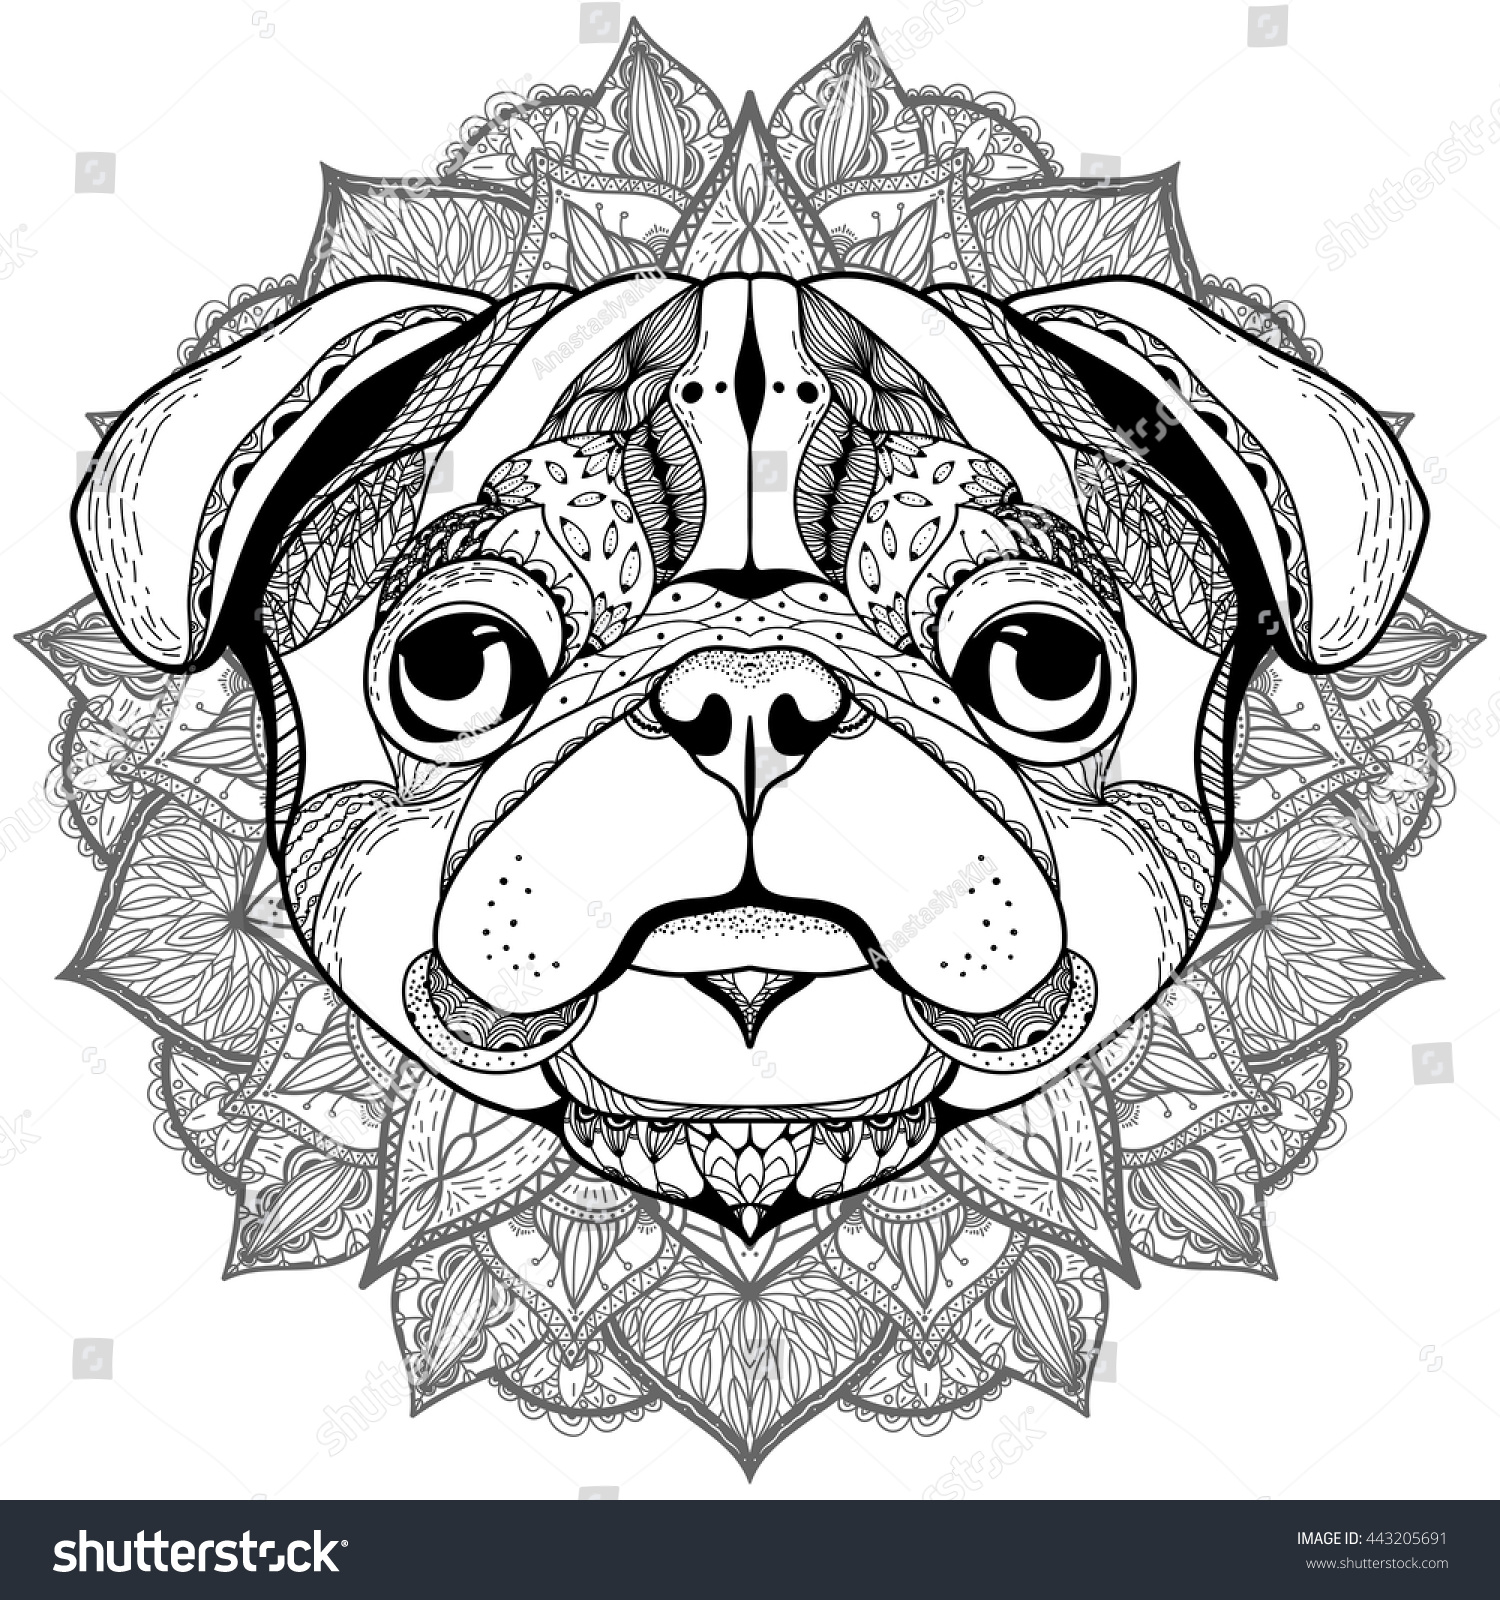 pug animal coloring pages. Zentangle stylized cartoon of PUG  Hand drawn sketch for adult antistress coloring page T Stylized Cartoon Pug Drawn Stock Vector HD Royalty